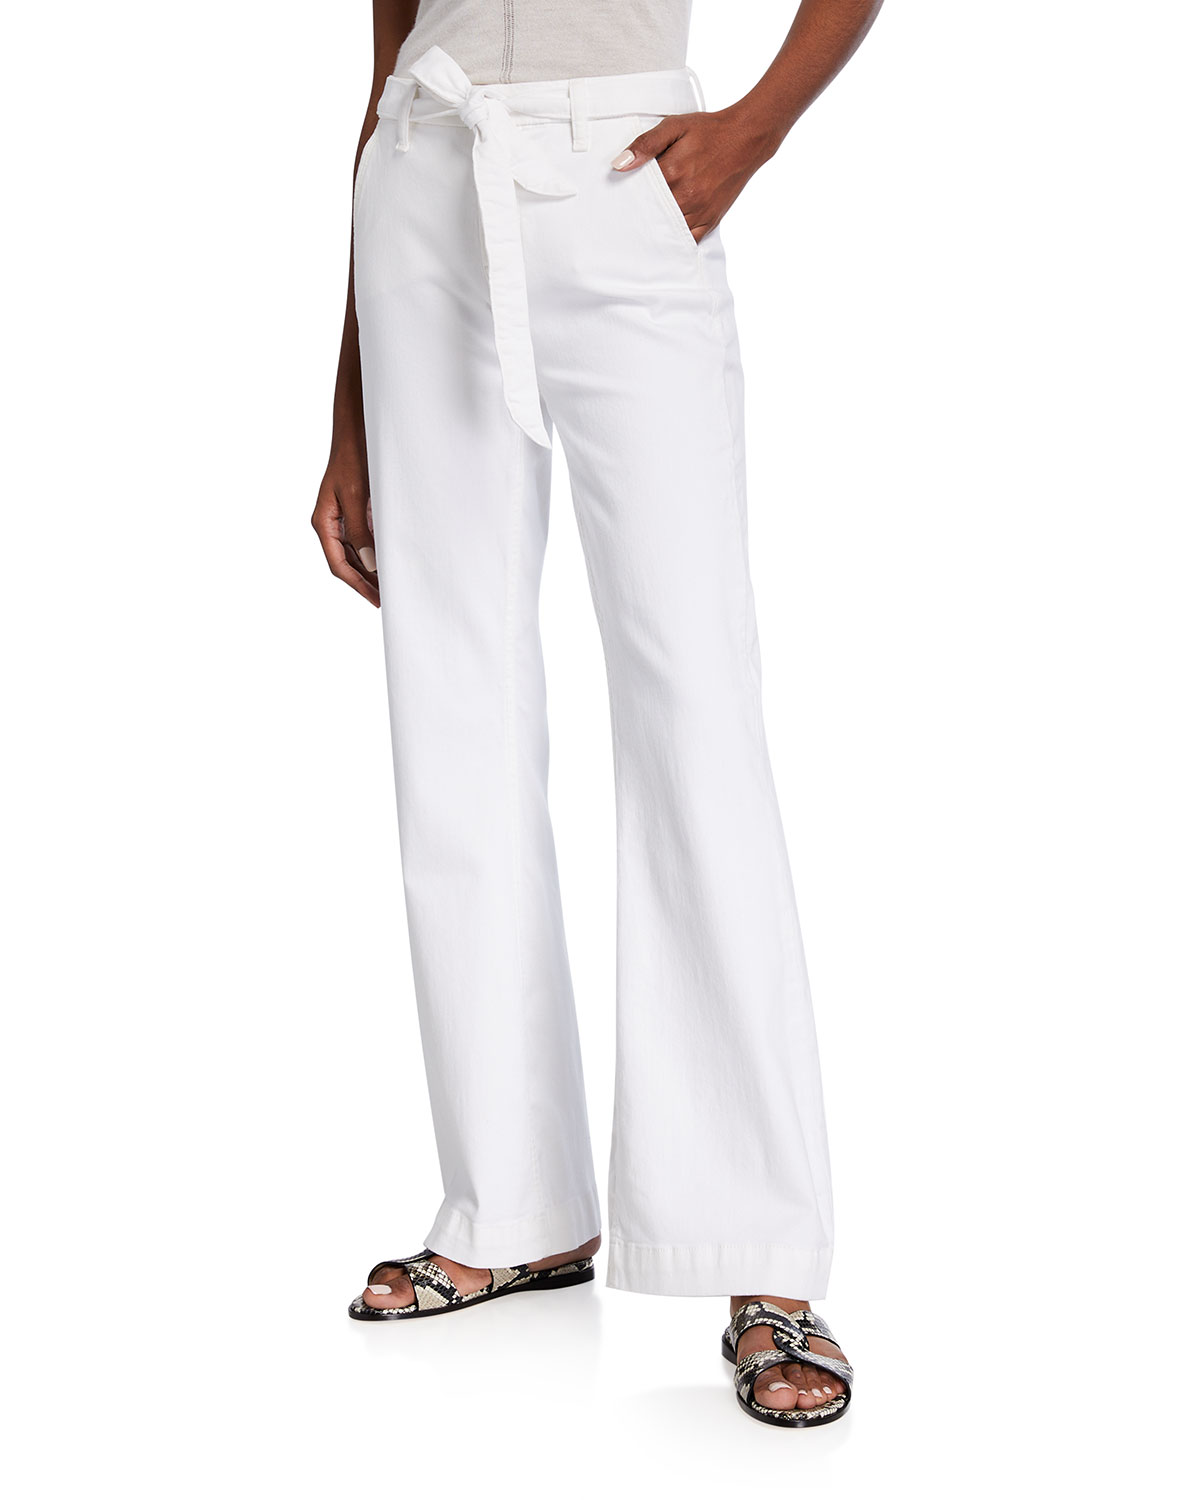 Jen7 TAILORLESS TROUSERS WITH SLANT POCKETS